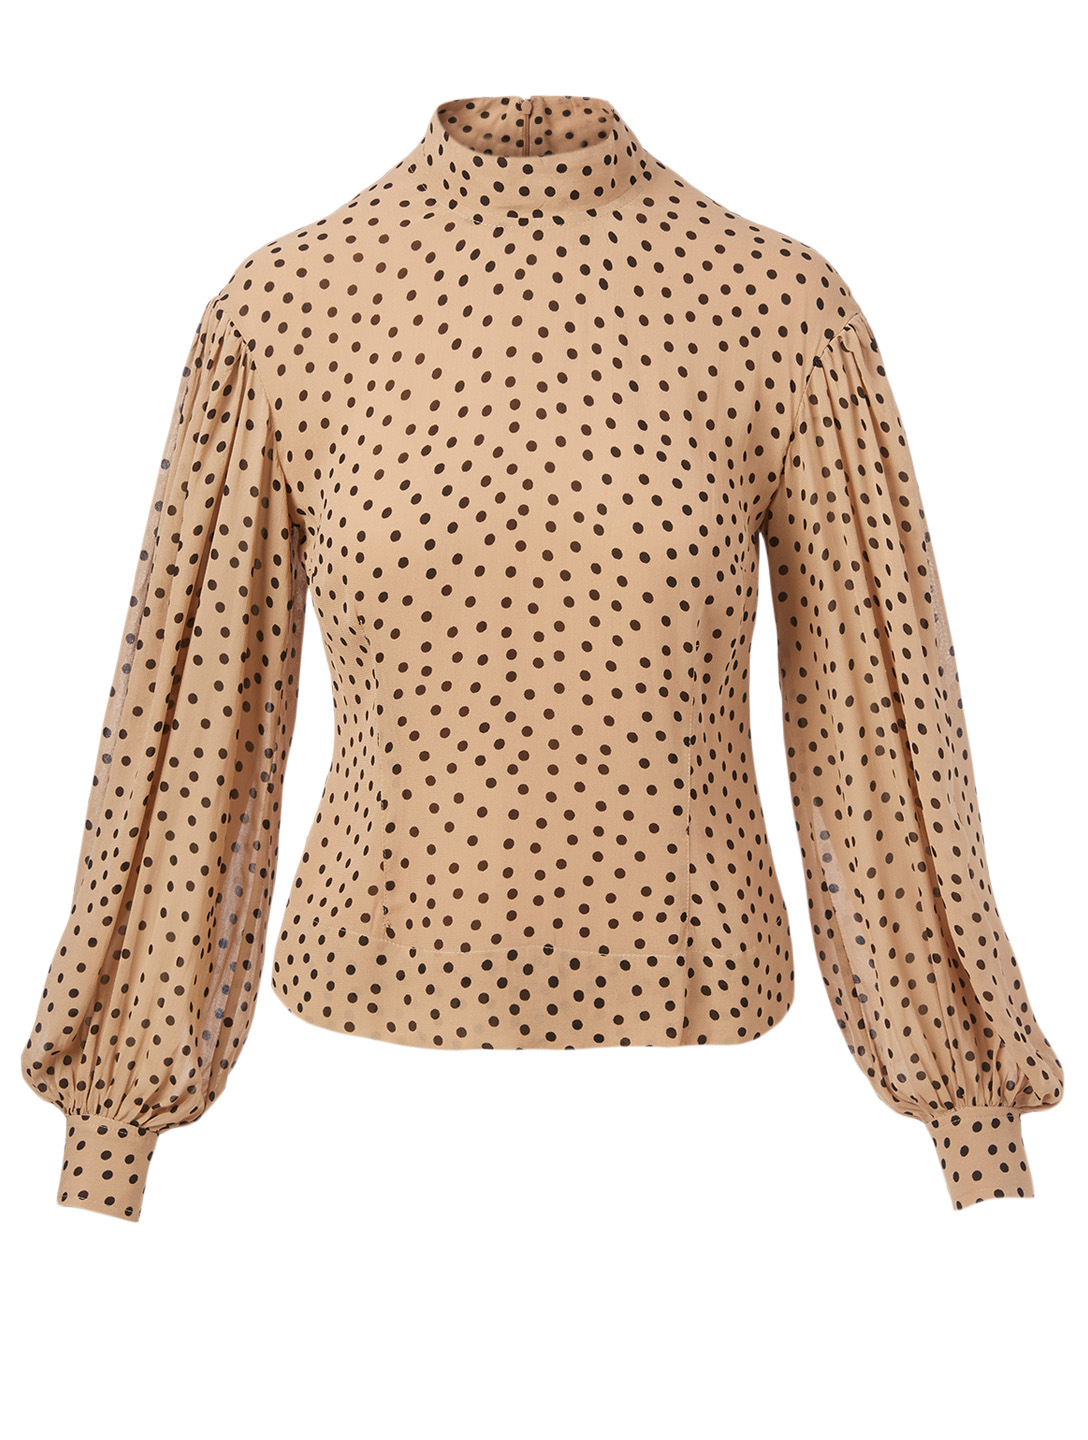 GANNI Georgette Blouse In Polka Dot Print Women's Beige